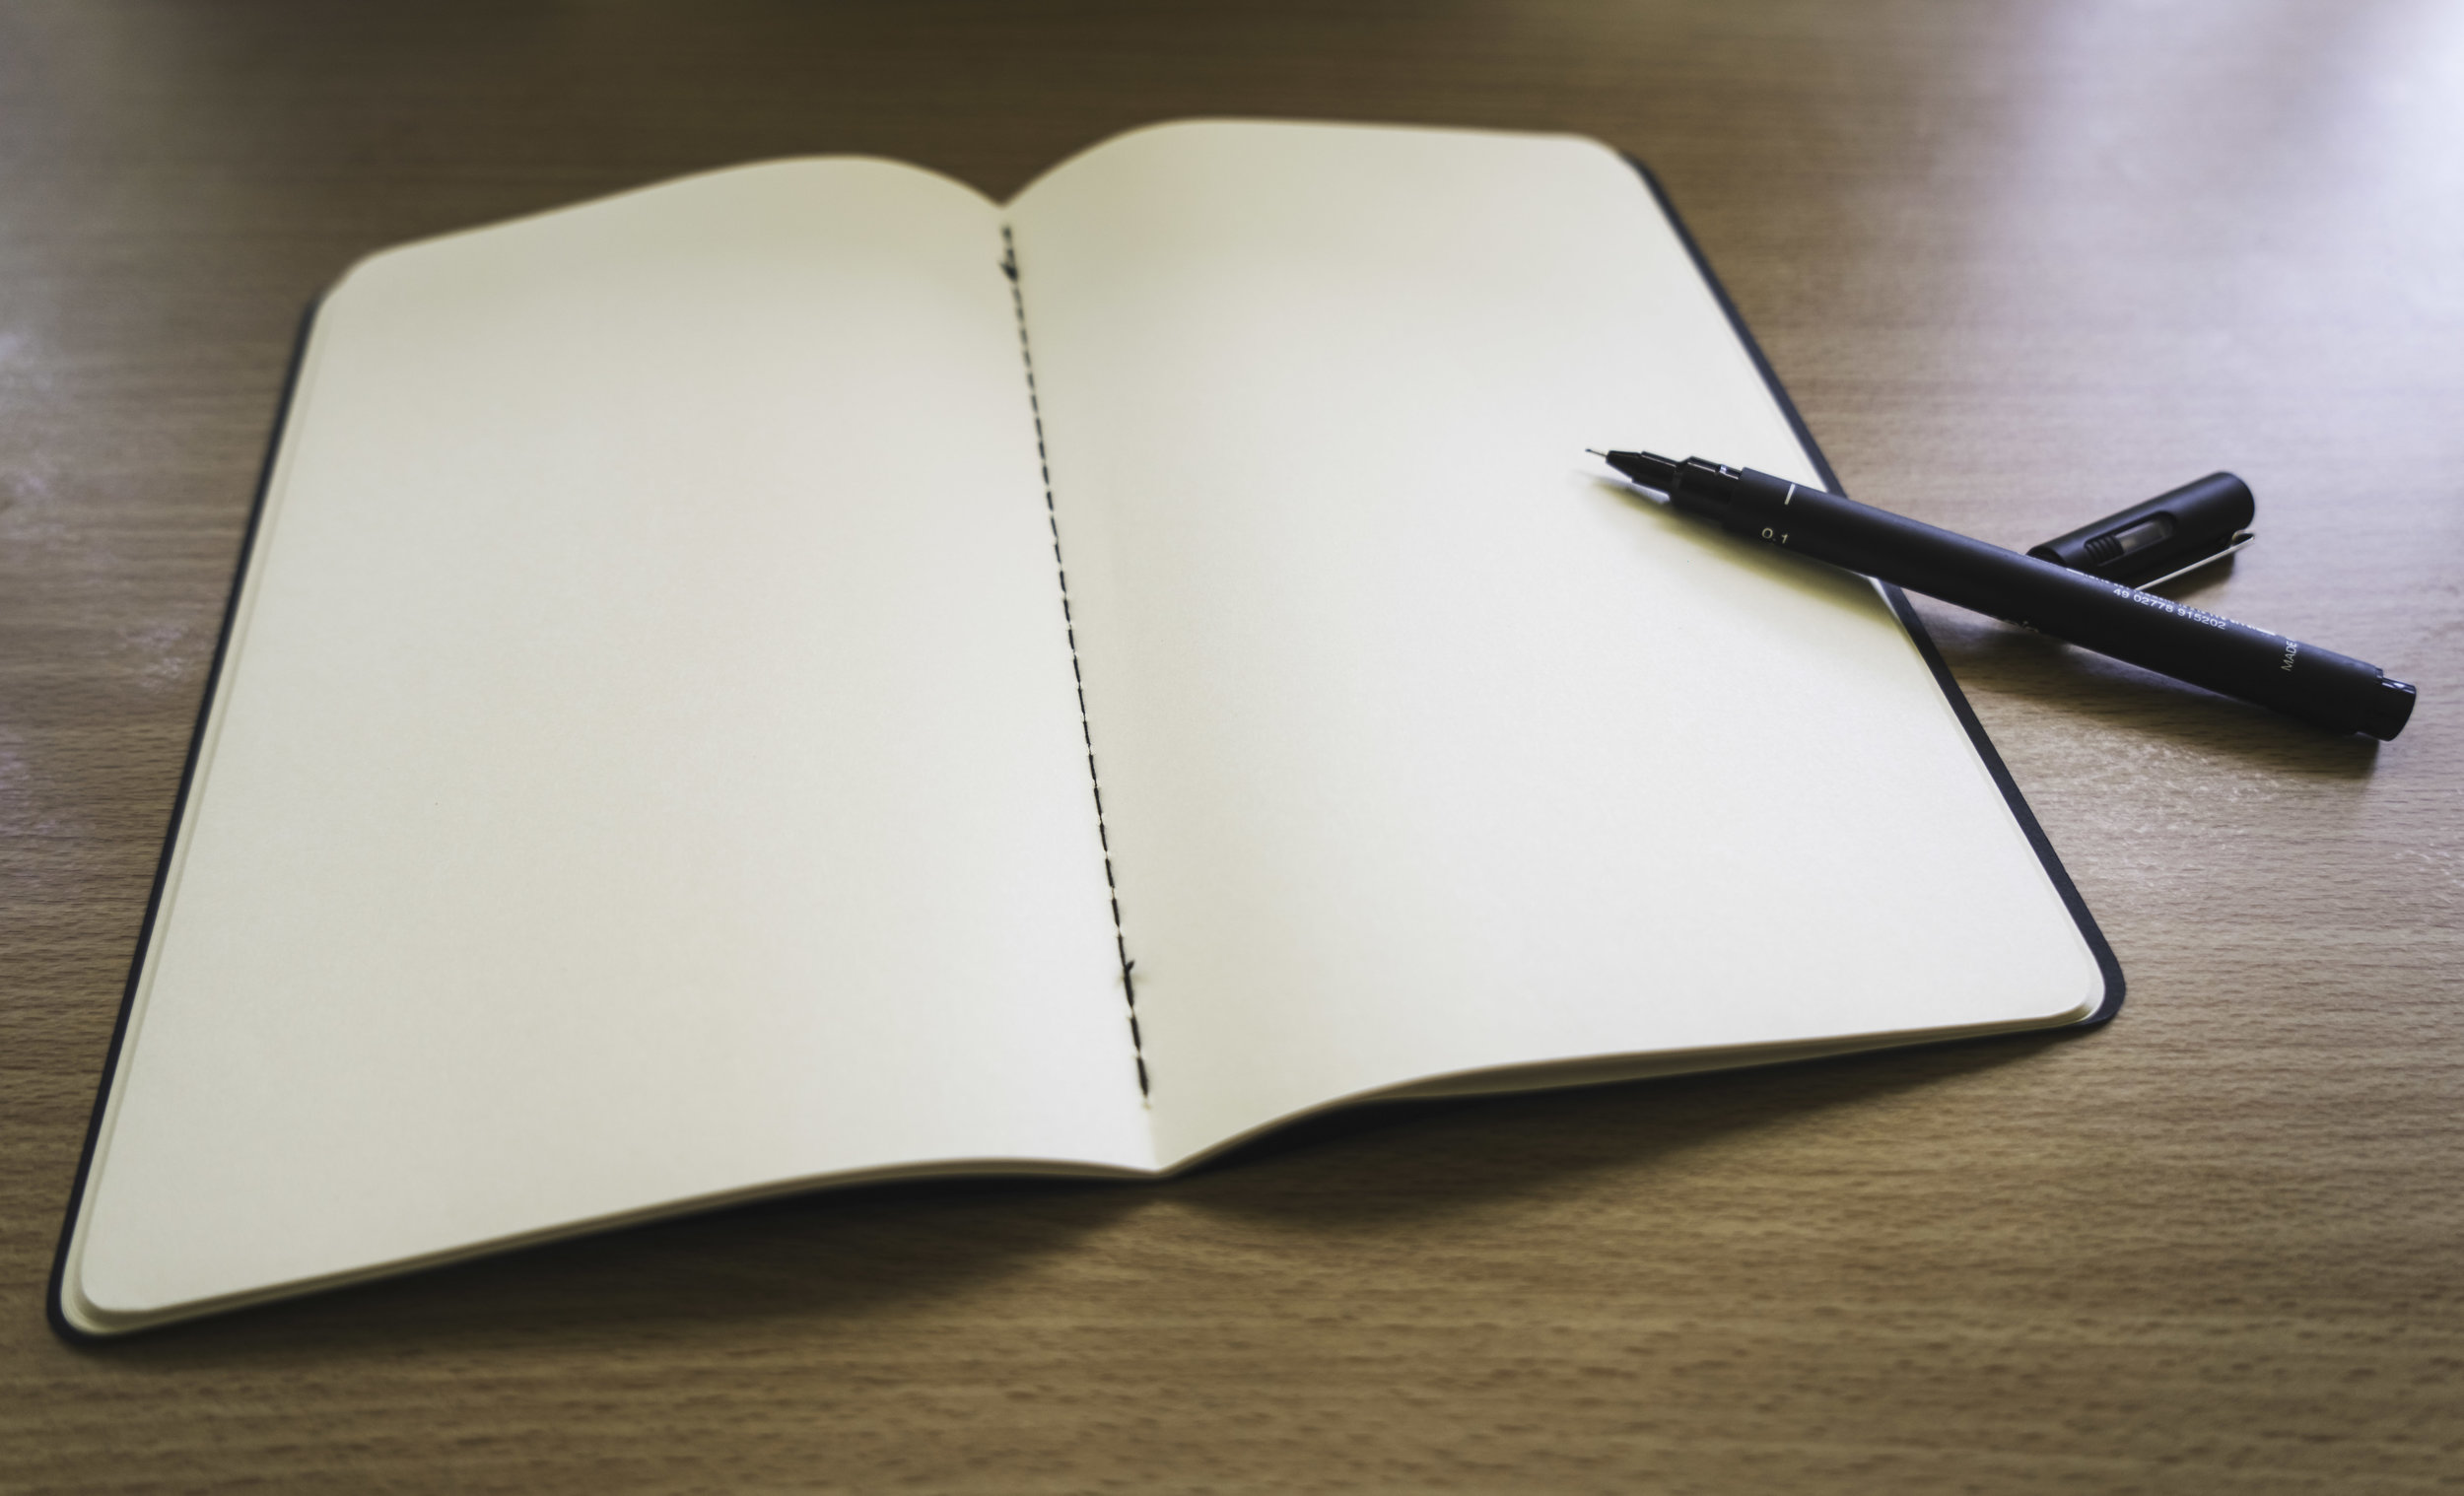 No need to draw a watermark, keep the pages blank for another day.